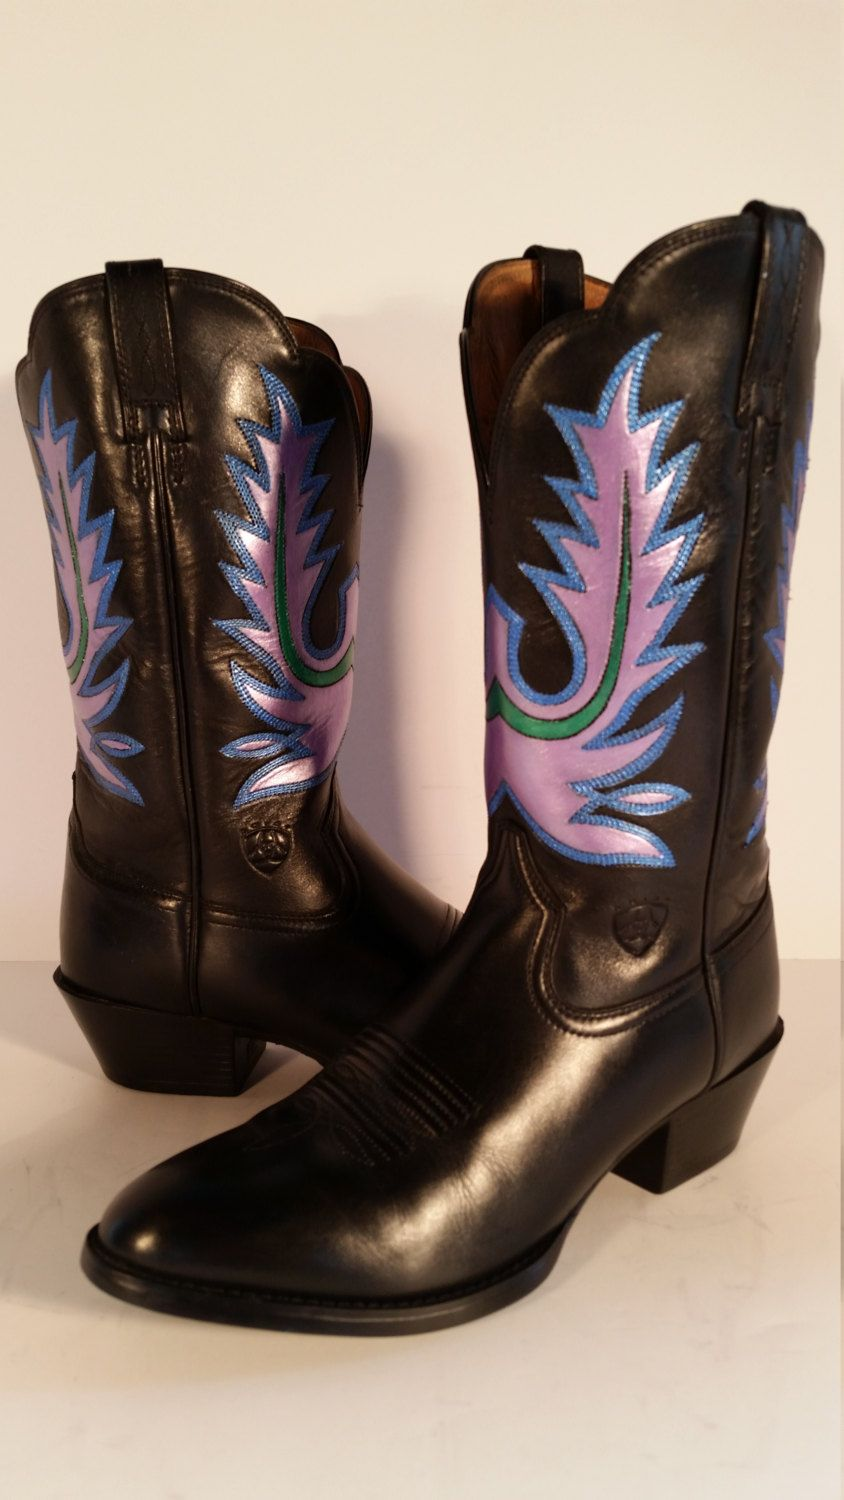 a4df3918af3 Ariat Heritage Women's Black and Metallic Hand Painted Western ...